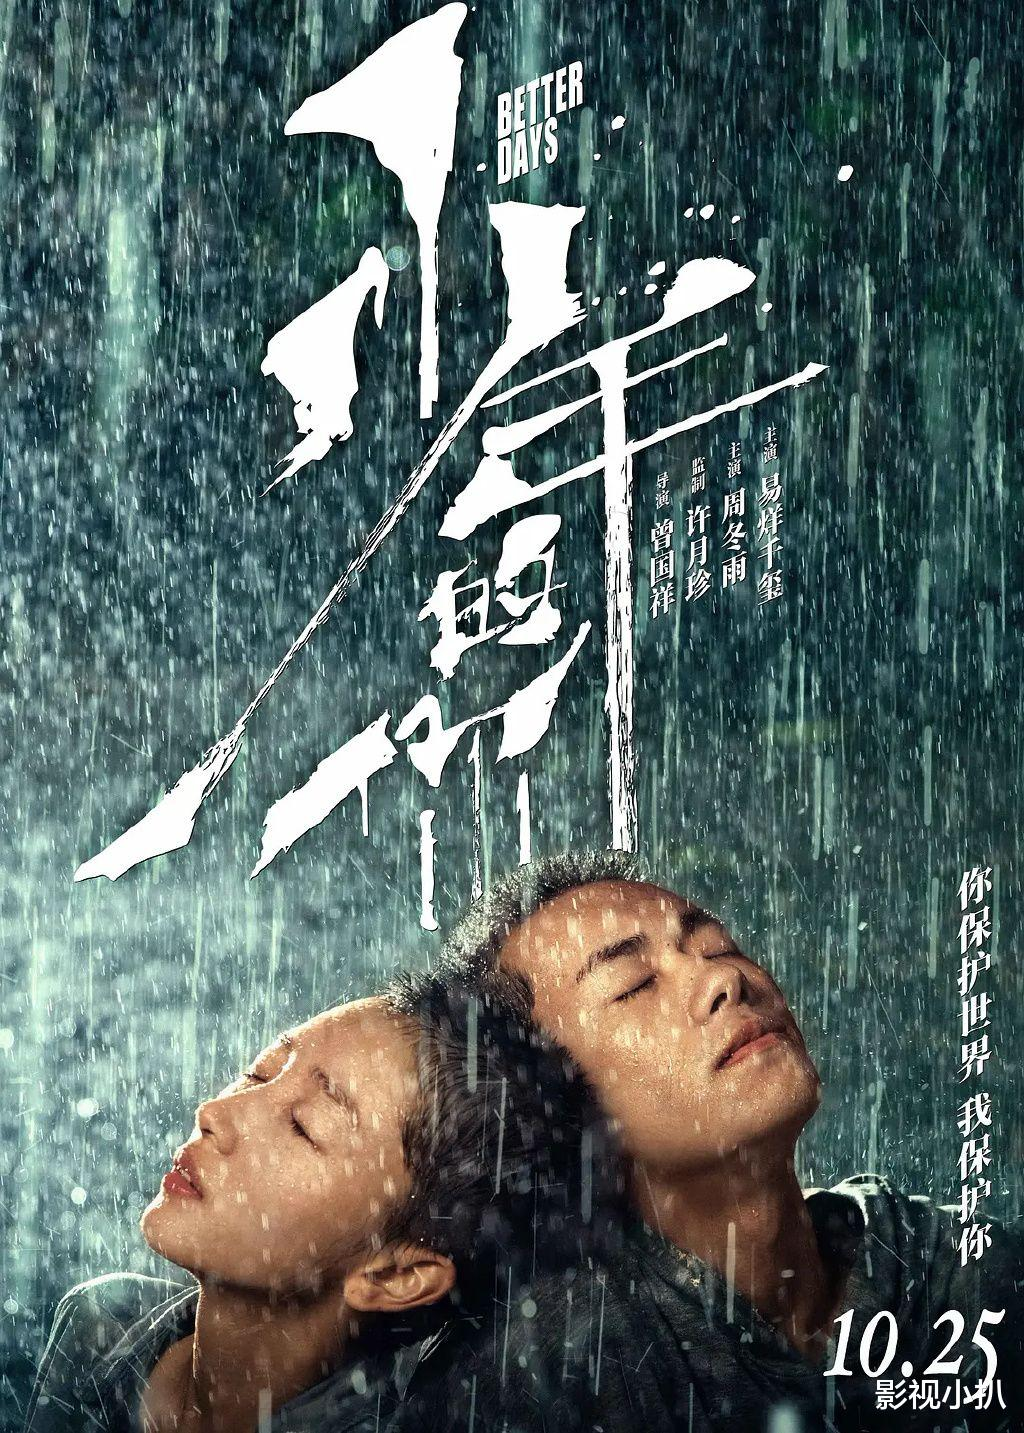 Four ducks CP combined high luxury endorsement? It is revealed that Yi Yang Qianxi takes over Zhang Yimou's movie, and his mind is obvious to untie